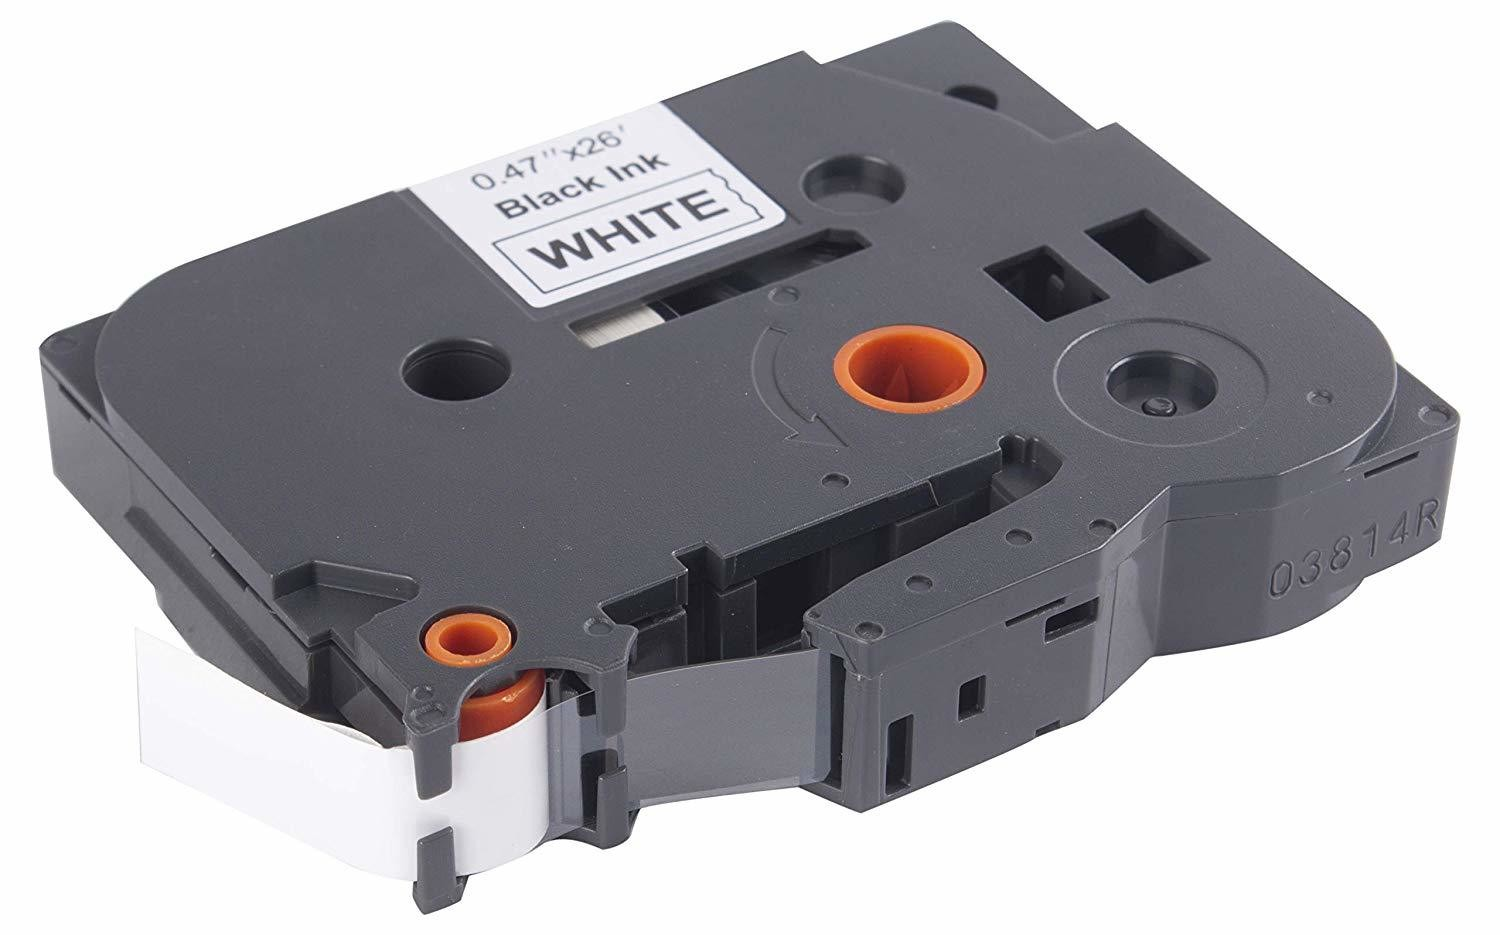 Compatible Tze-231 Laminated 12mm Black on White Label Tape